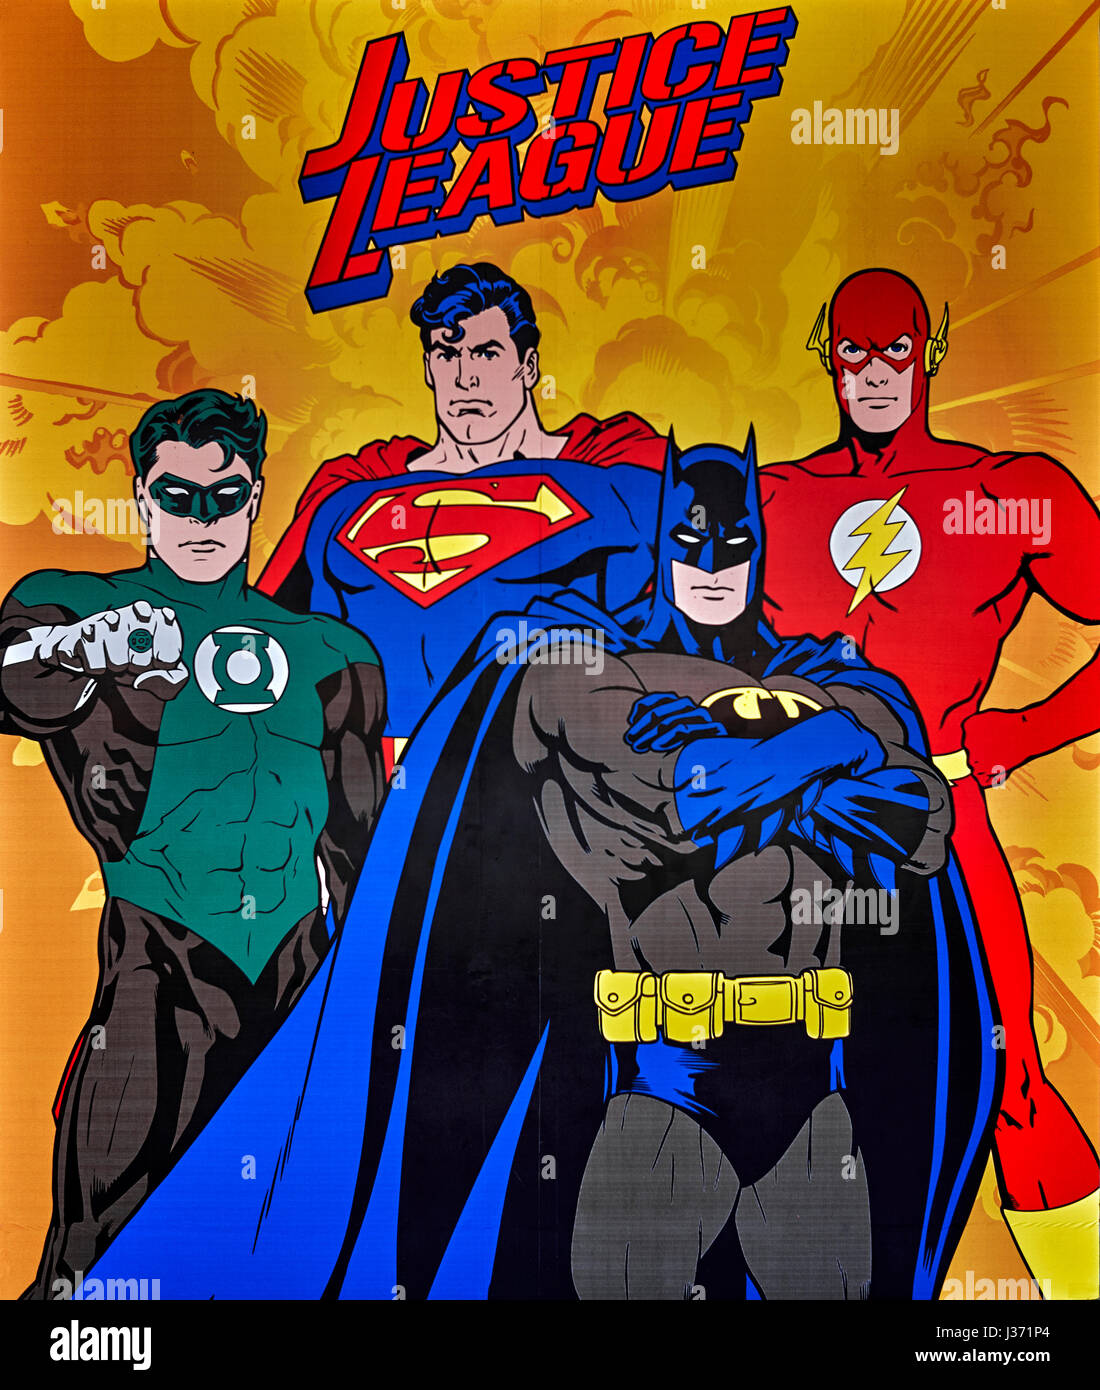 Poster Justice League, Superheroes - Stock Image